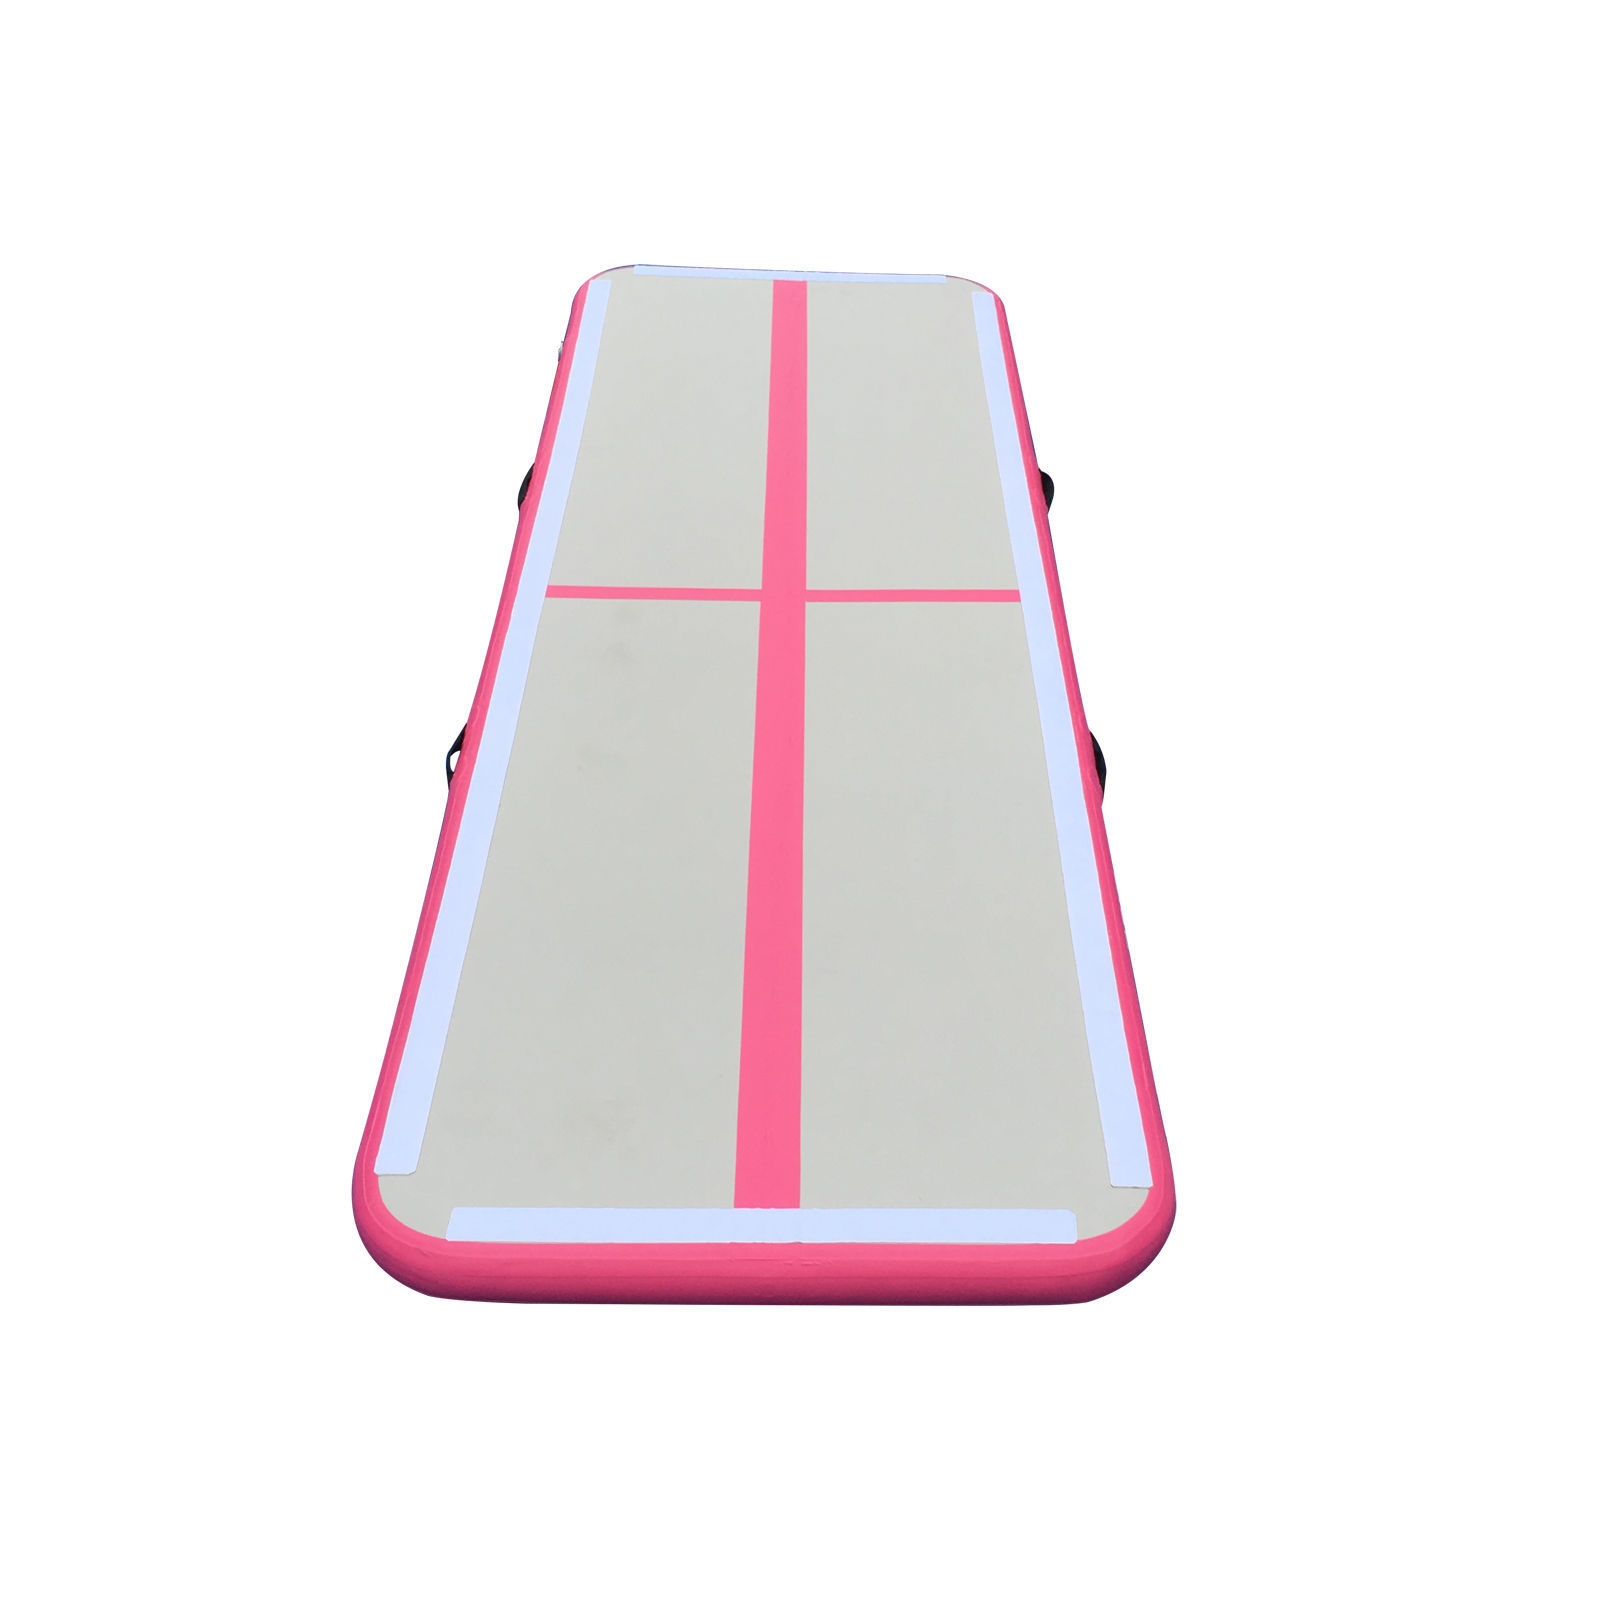 tumbling air new floor itm mat gym gymnastics for airtrack track home pump inflatable w mats